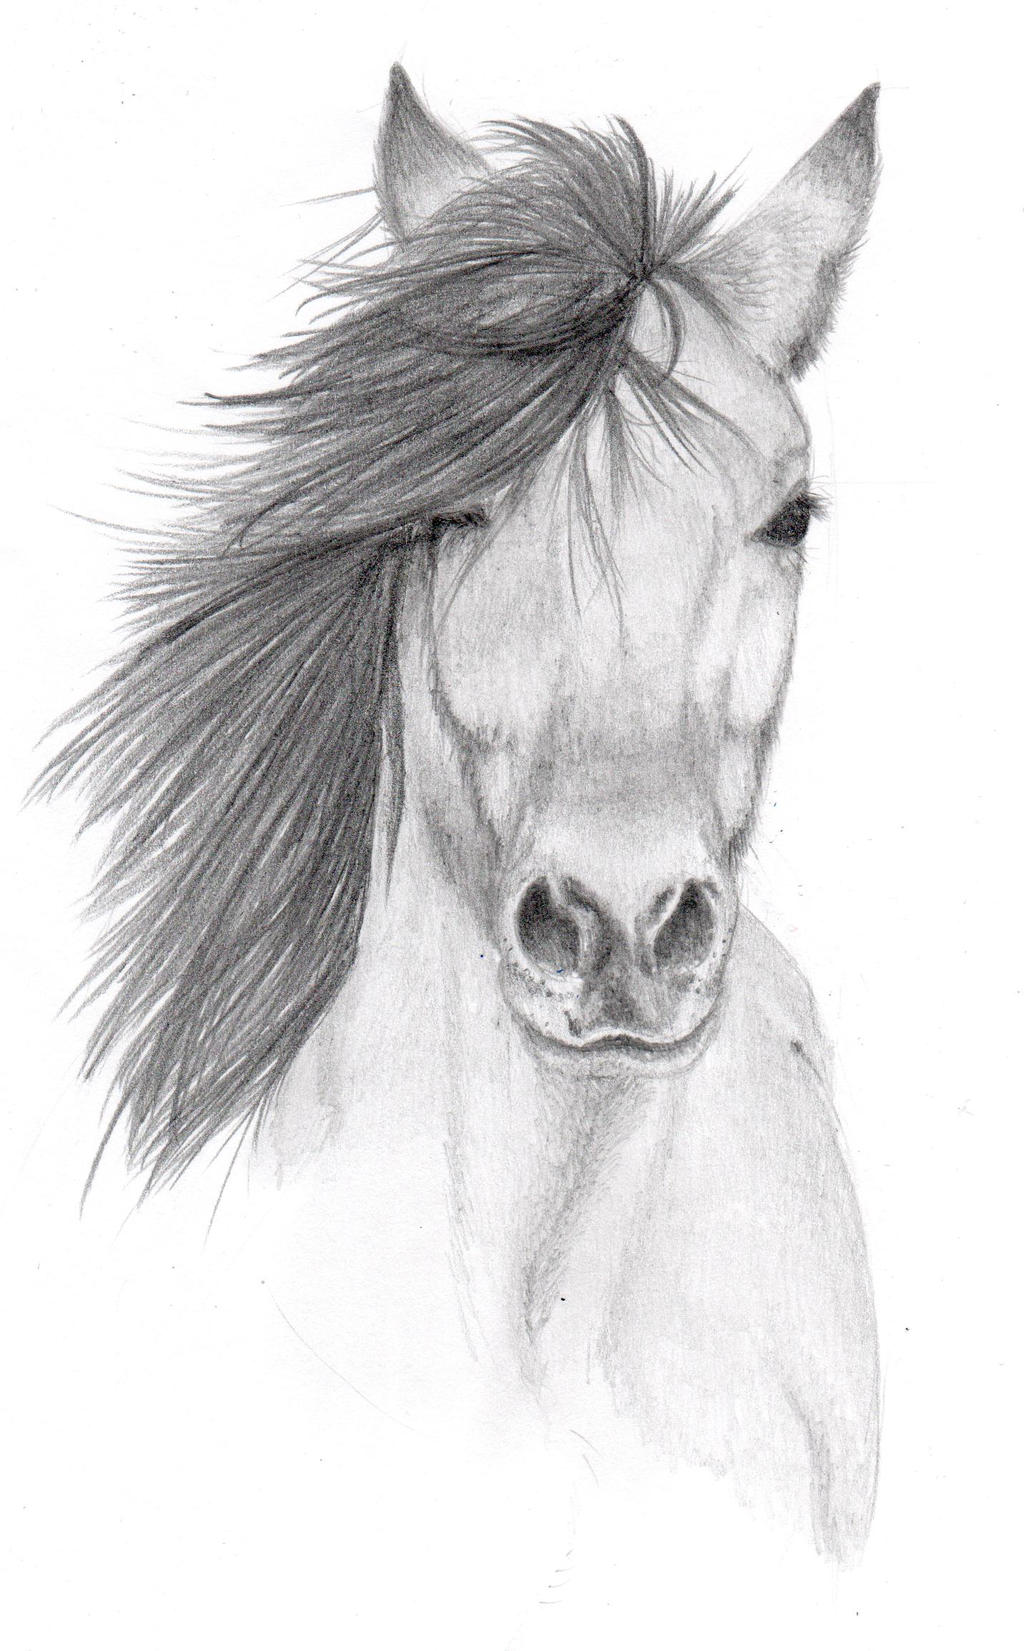 Scribble Drawing Artists : Horse pencil sketch by vulpes corsac on deviantart